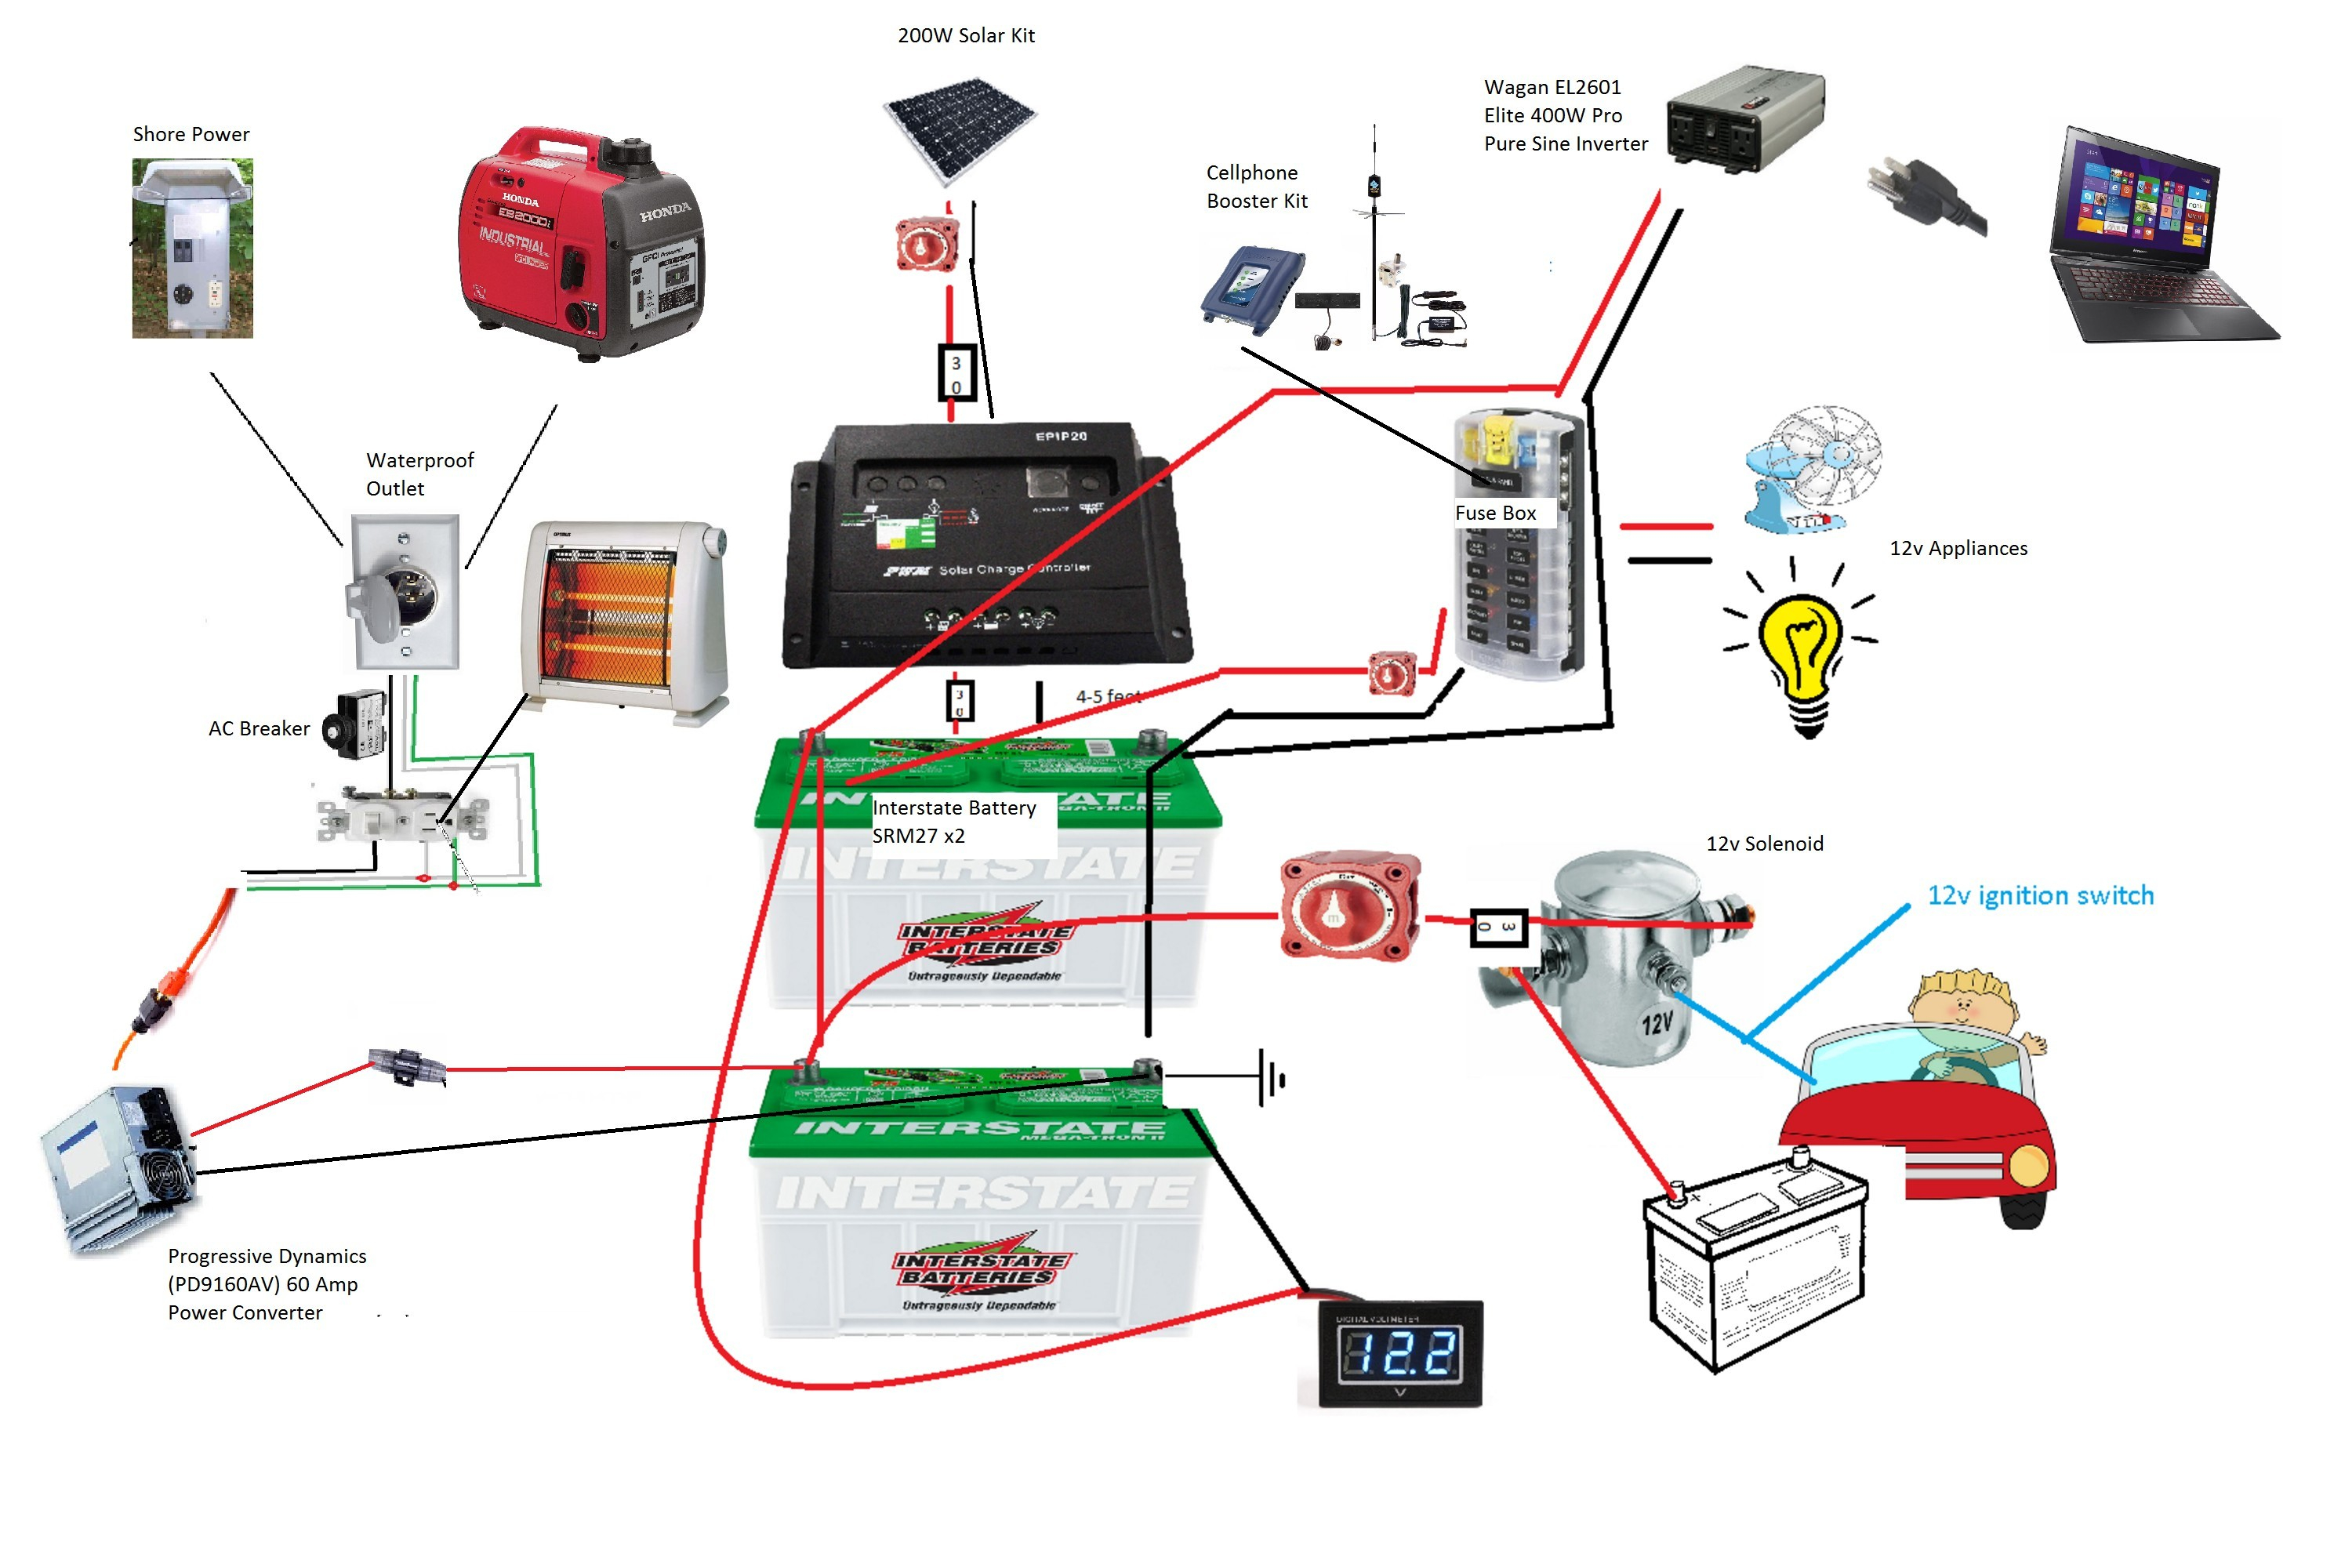 12 Volt Trailer Wiring Diagram | Trailer Wiring Diagram